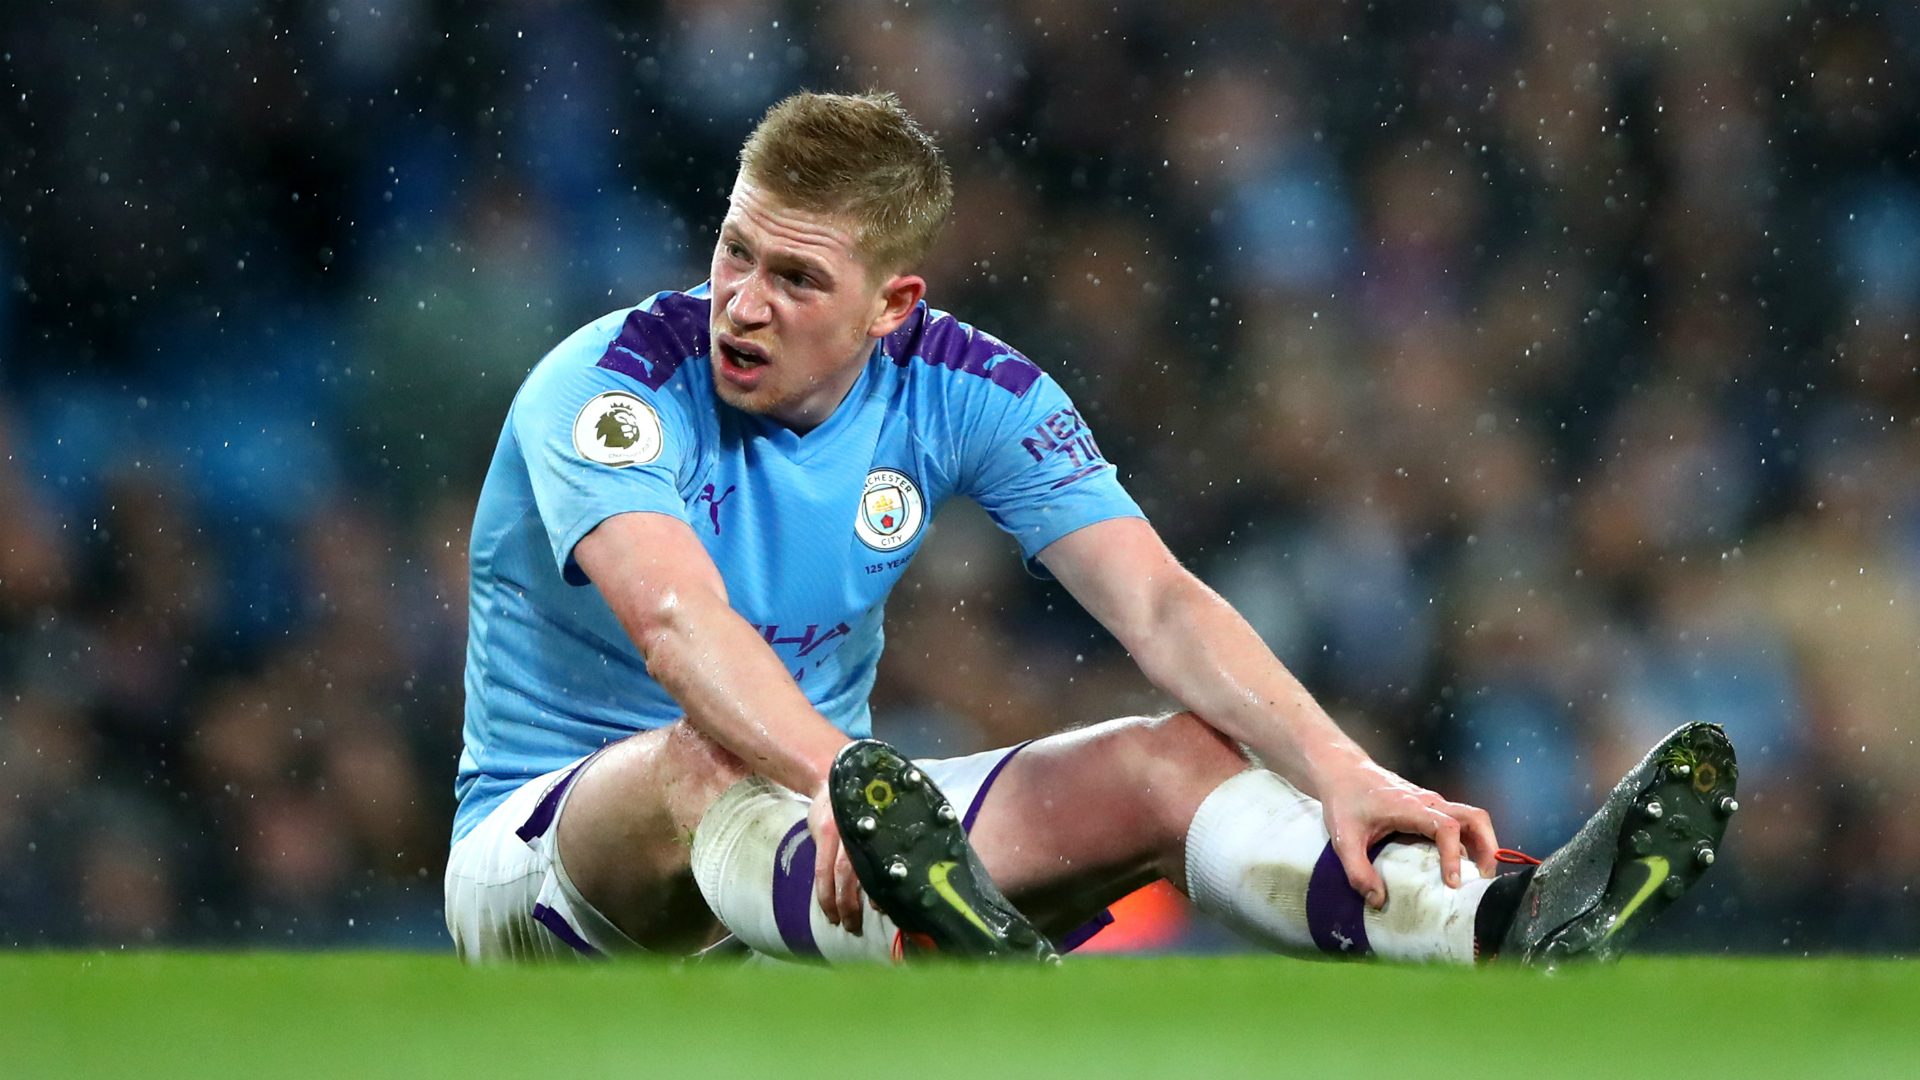 That was the best he has played in a long time - Guardiola marvels at 'fighter' De Bruyne